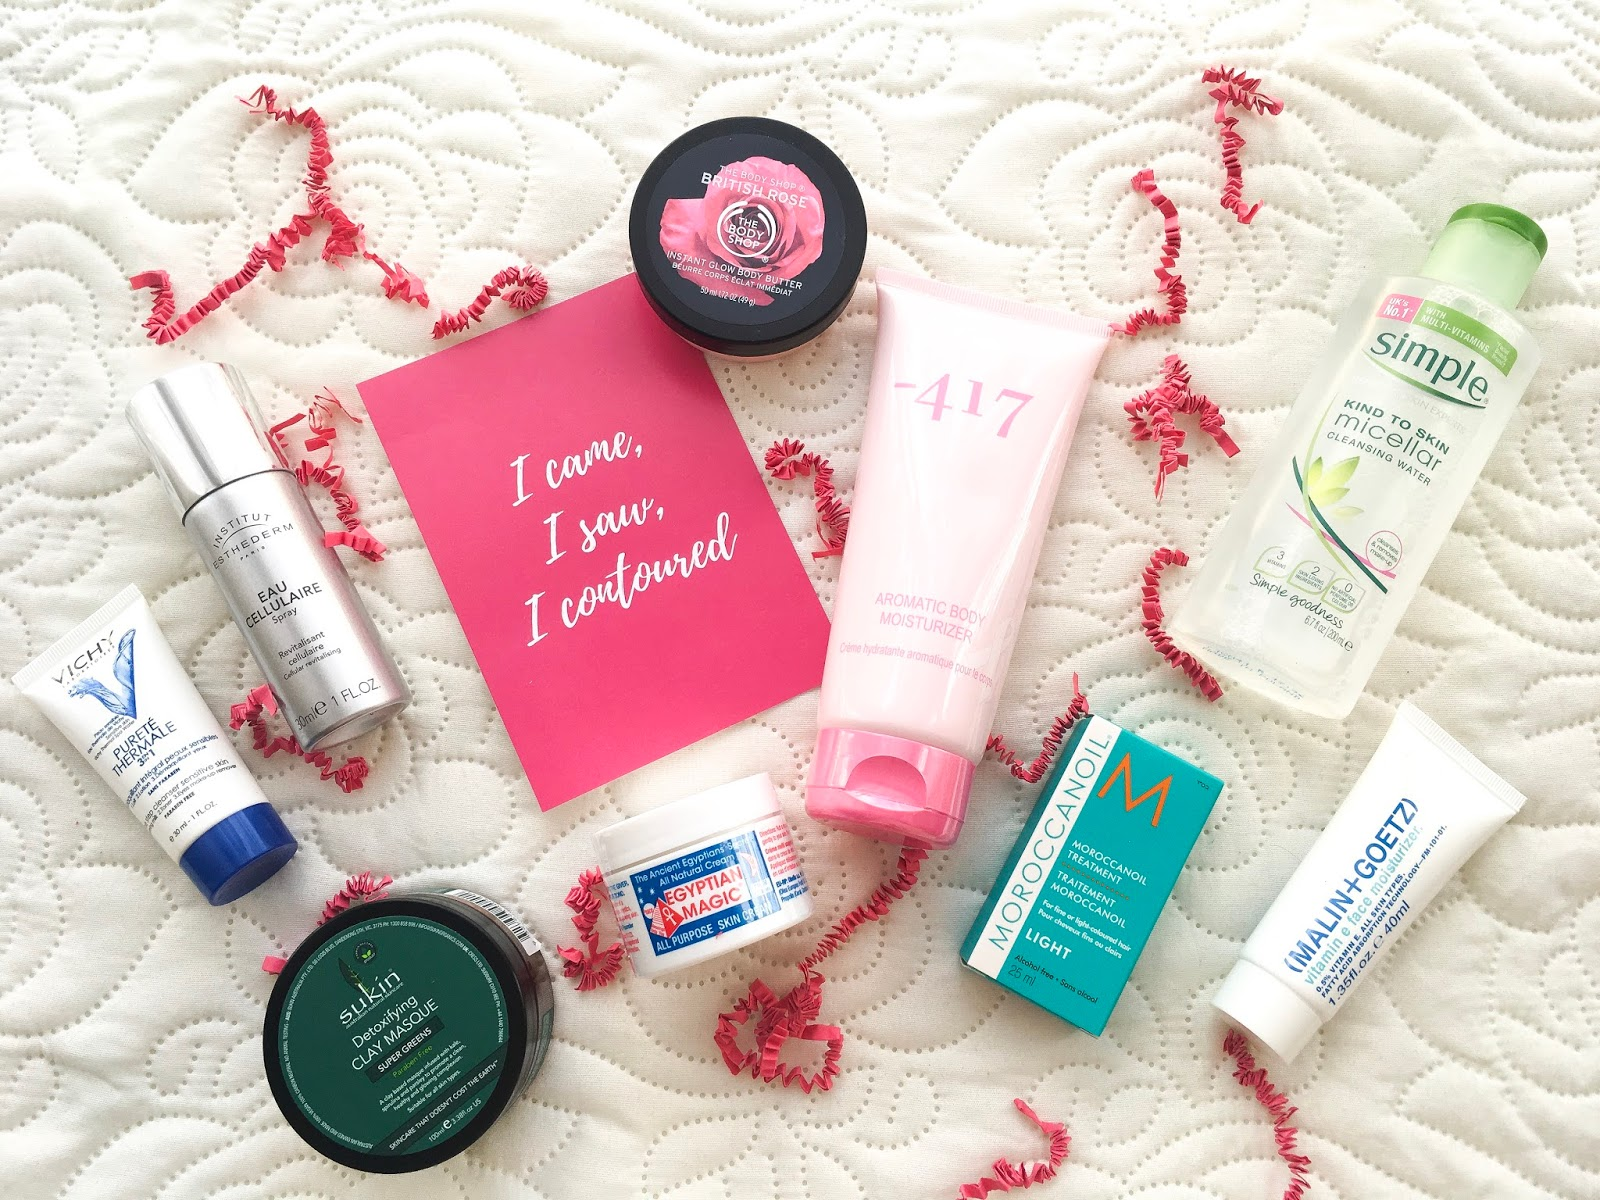 latest in beauty monthly beauty subscription, best beauty subscription, latest in beauty review